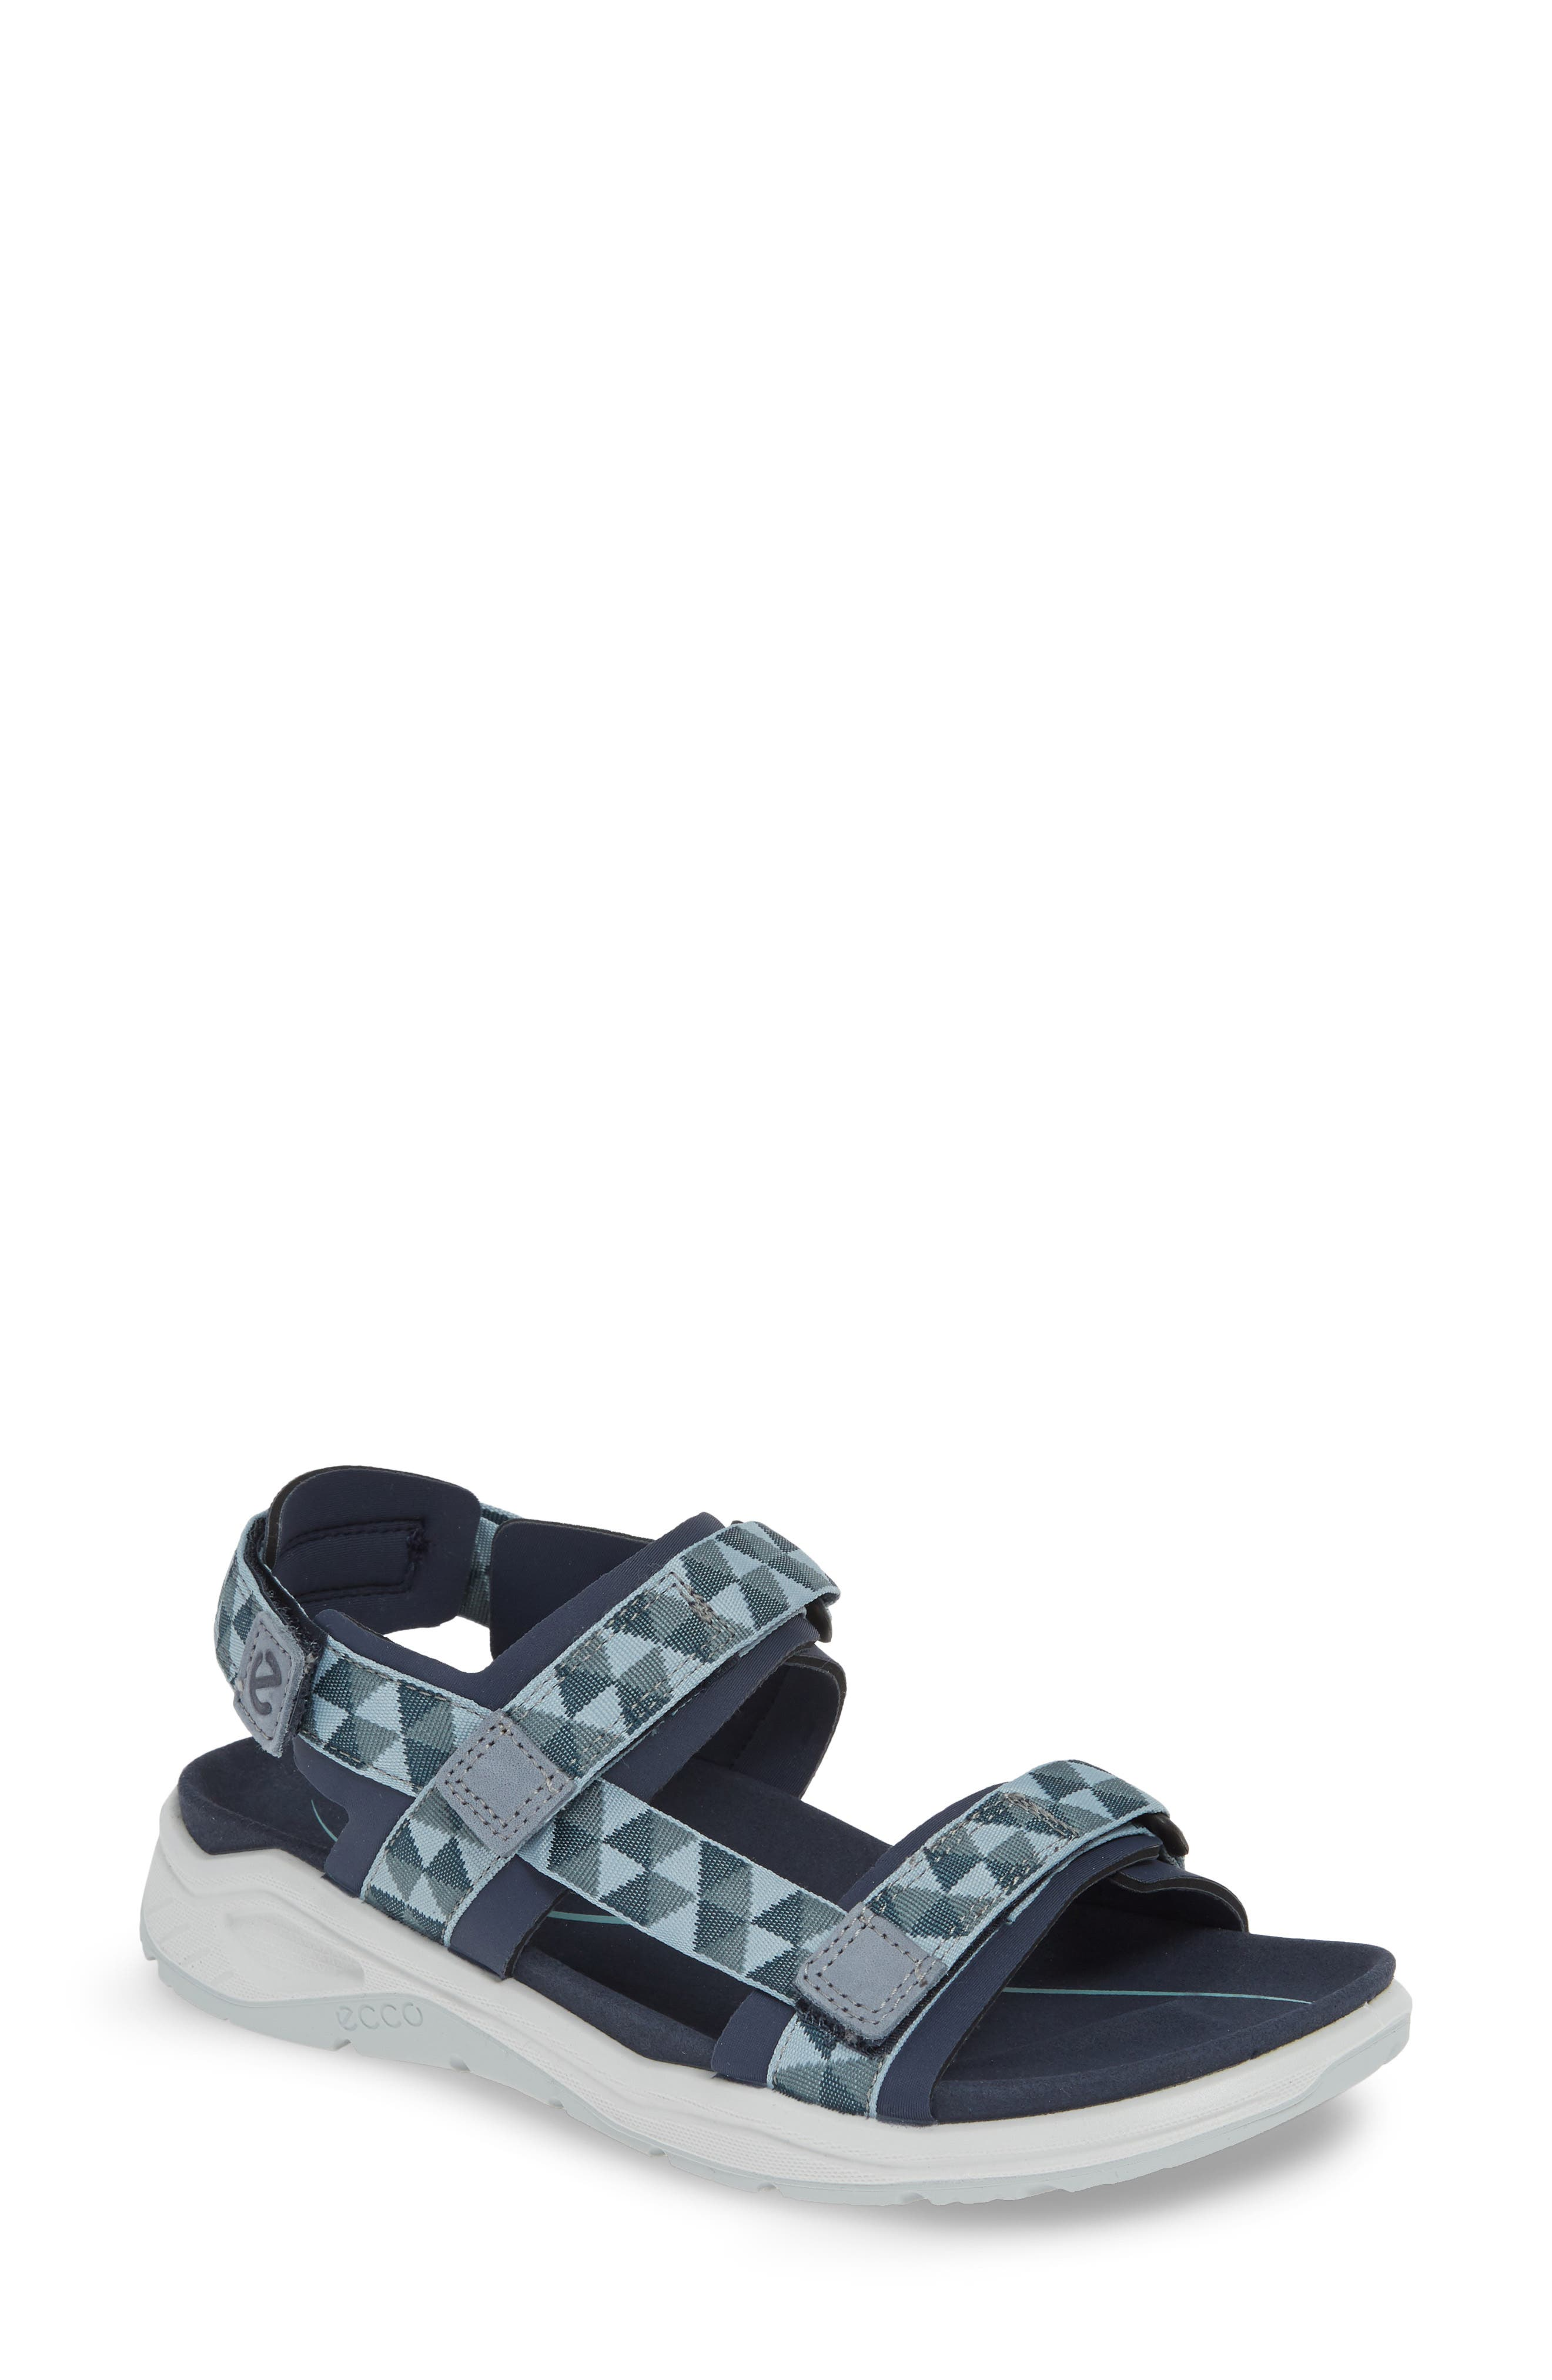 UPC 809704855486 product image for Women's Ecco X-Trinsic Sandal, Size 10-10.5US / 41EU - Blue | upcitemdb.com